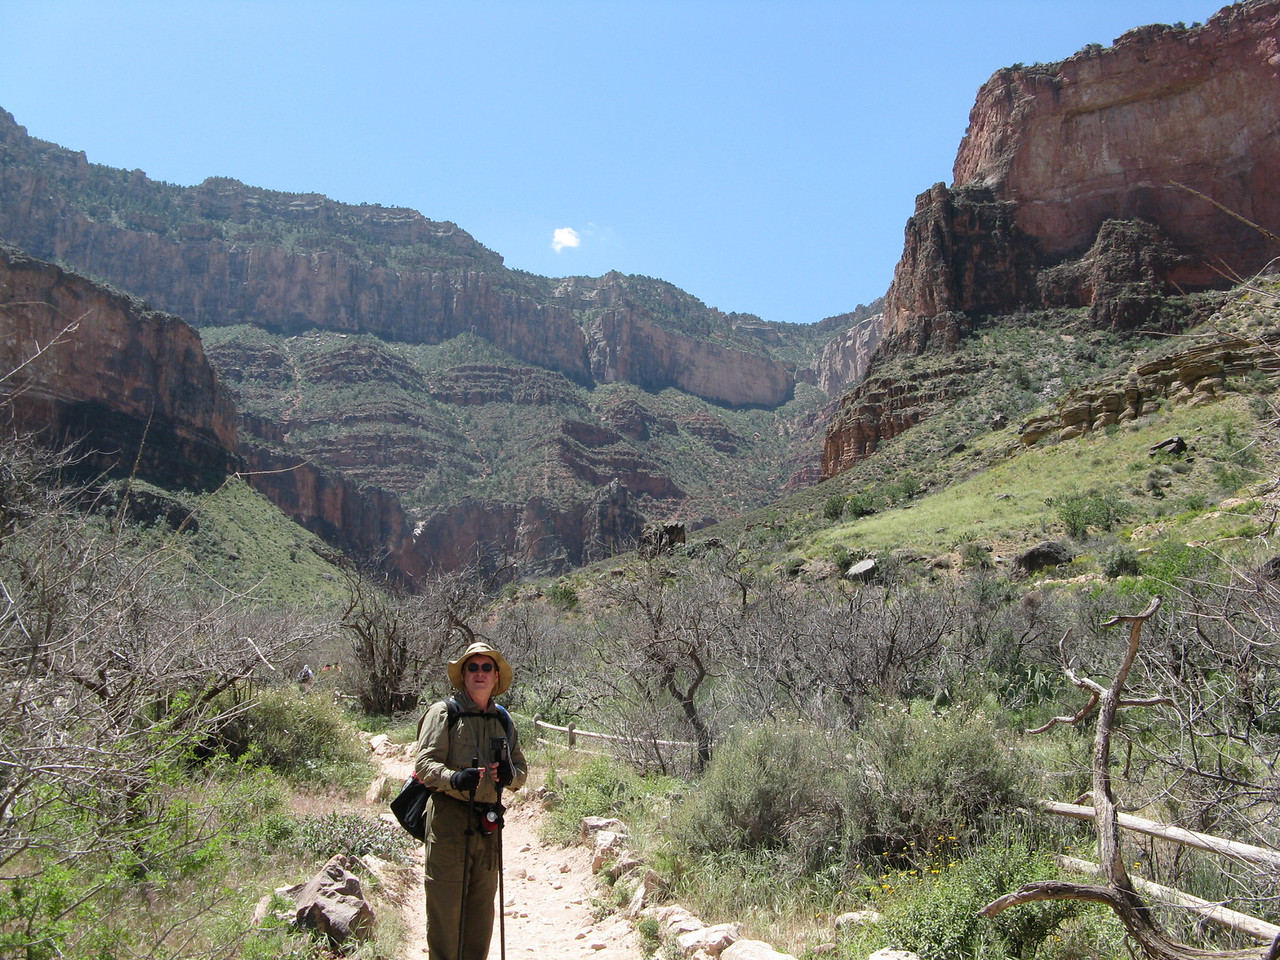 After lunch in Indian Garden, we went different directions.  Glenn, Jeff and Dariusz headed out to Plateau Point and back. Wendell started climbing the trail far ahead of us.  Richard and I sauntered up the path.